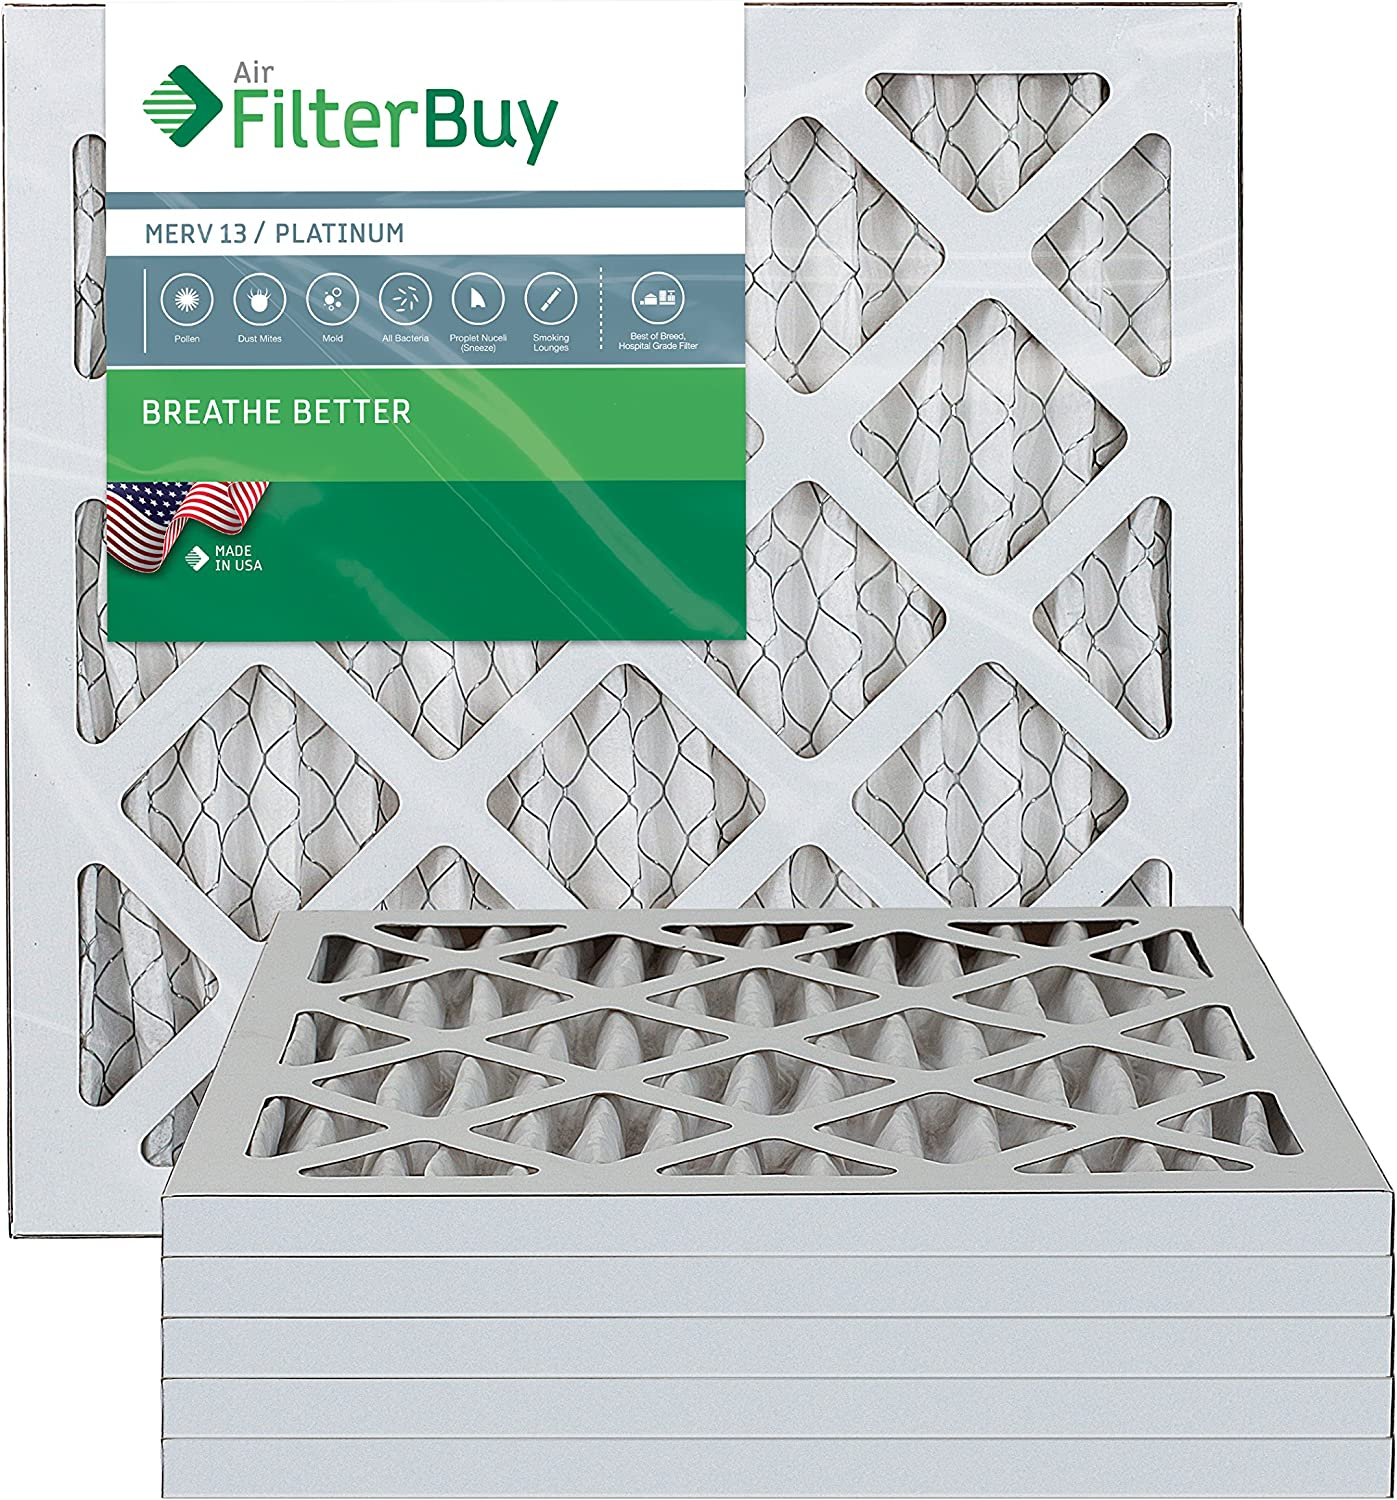 FilterBuy 12x12x1 MERV 13 Pleated AC Furnace Air Filter, (Pack of 6 Filters), 12x12x1 – Platinum